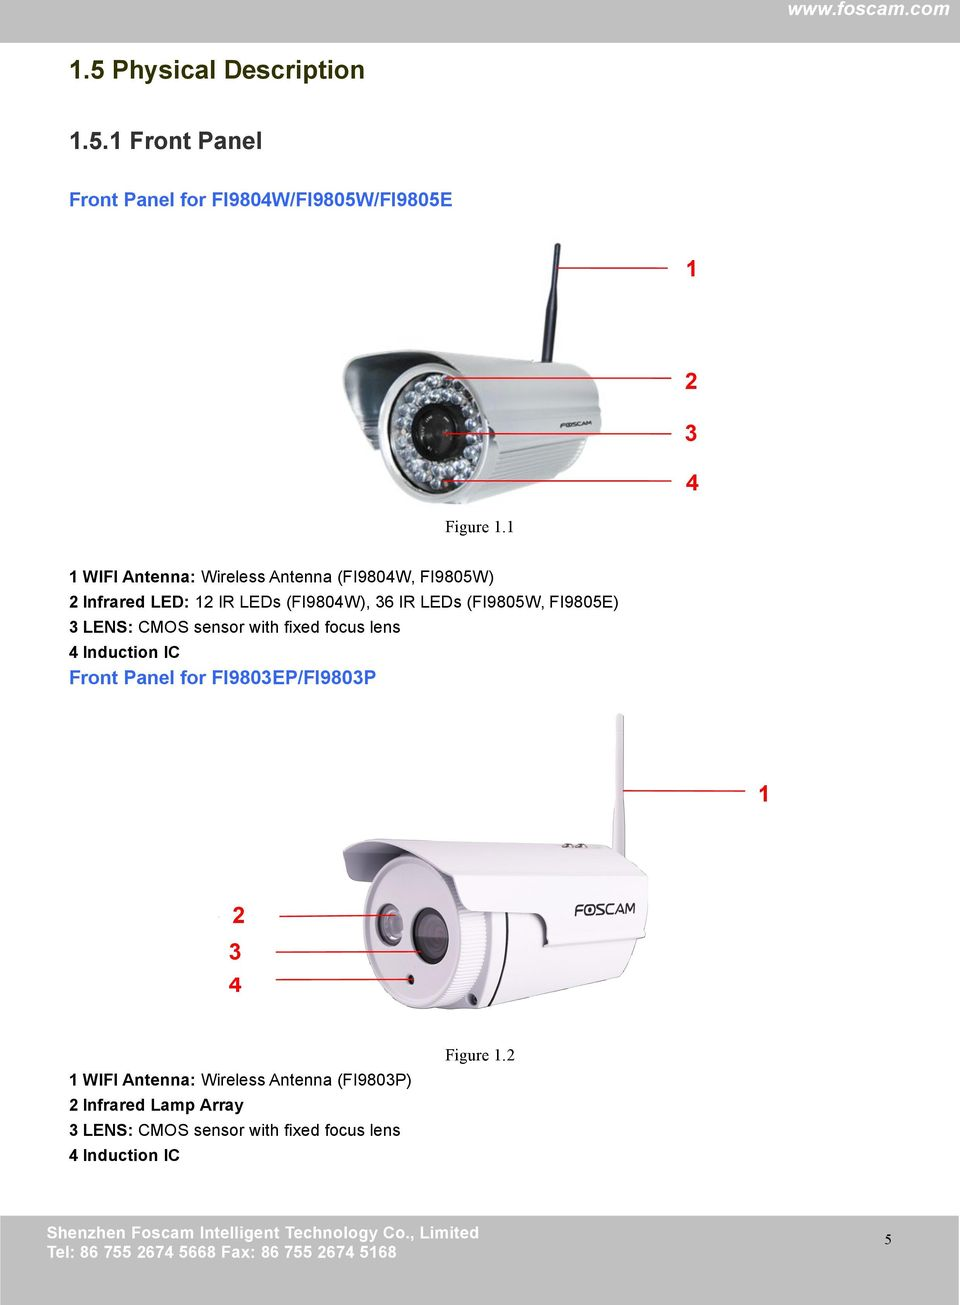 FI9805E) 3 LENS: CMOS sensor with fixed focus lens 4 Induction IC Front Panel for FI9803EP/FI9803P 1 2 3 4 1 WIFI